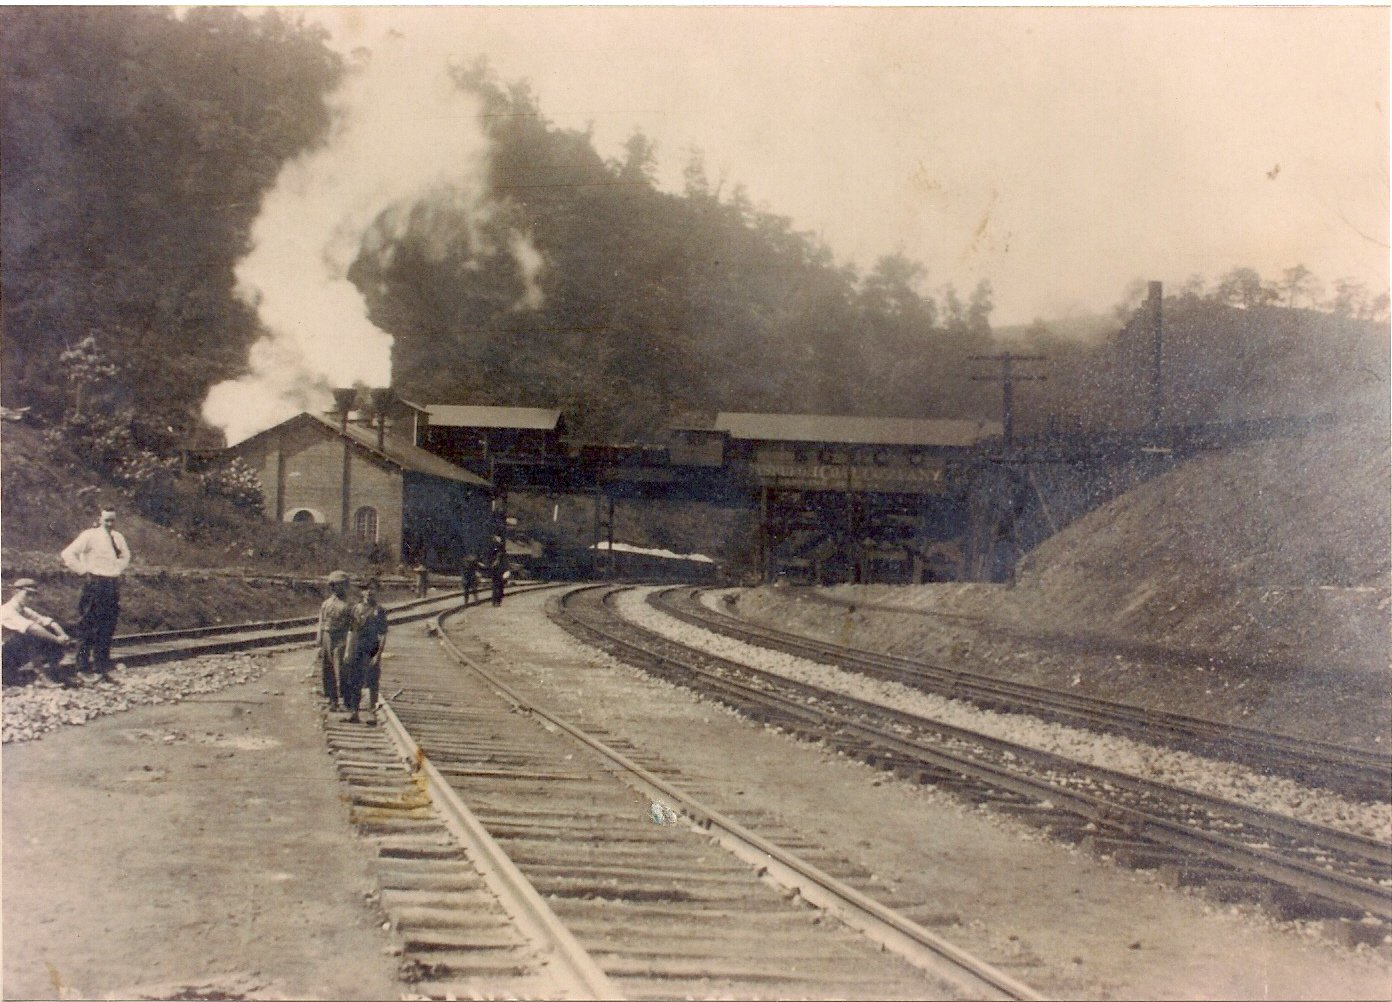 Banning # 2 coal mine in Whitsett, PA circa 1920 (Photo courtesy of the Whitsett Historical Society)